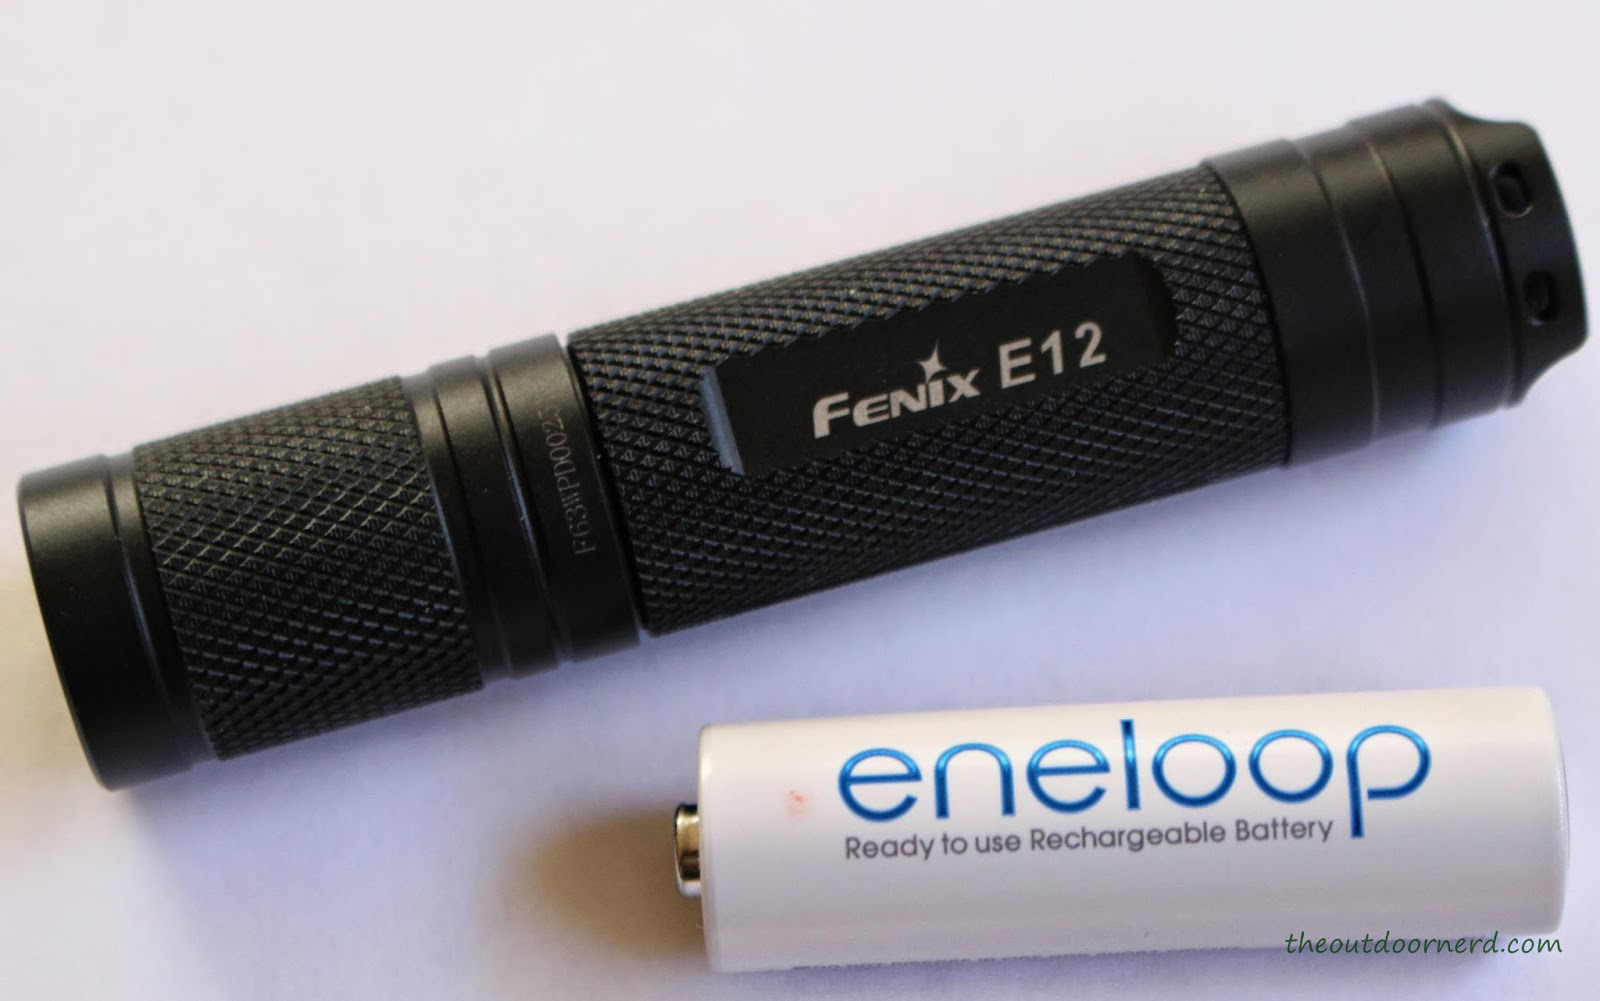 Fenix E12 1xAA EDC Flashlight Product Image 8